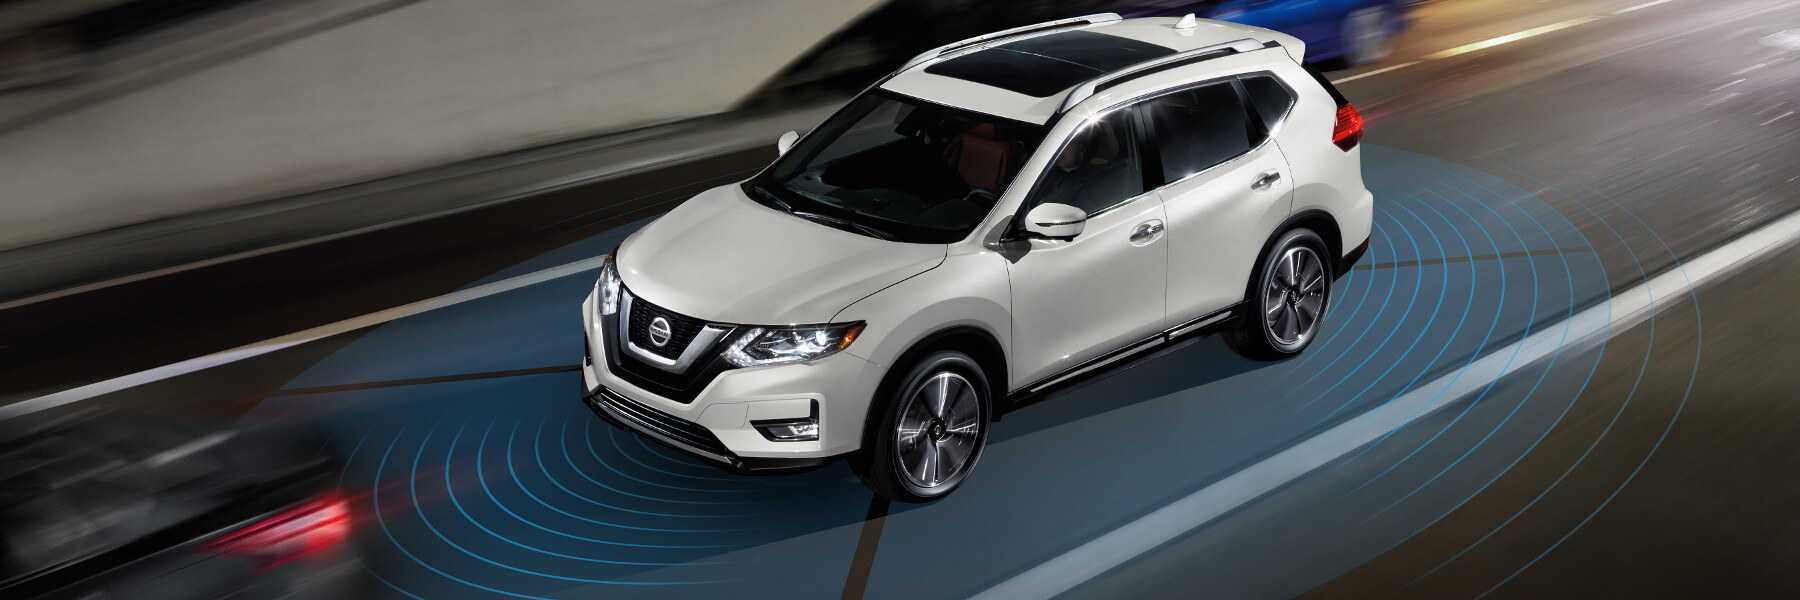 A white Nissan Rogue driving down a road using a safety sensing feature